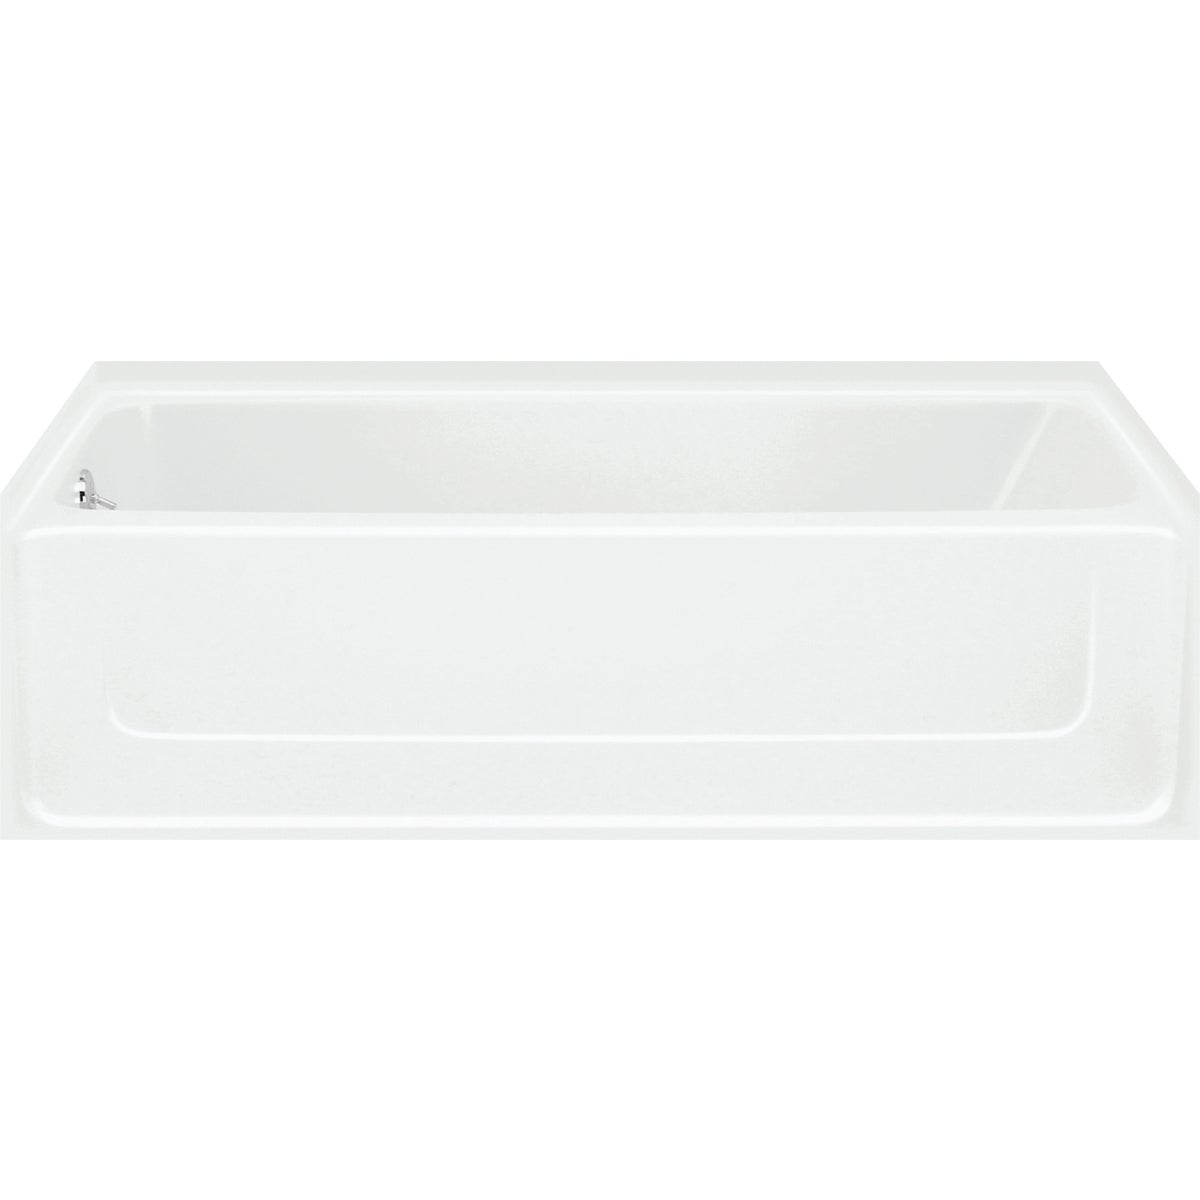 5 PACK WHITE LH TUB - 61041510-0 by Sterling Pbg/vikrell